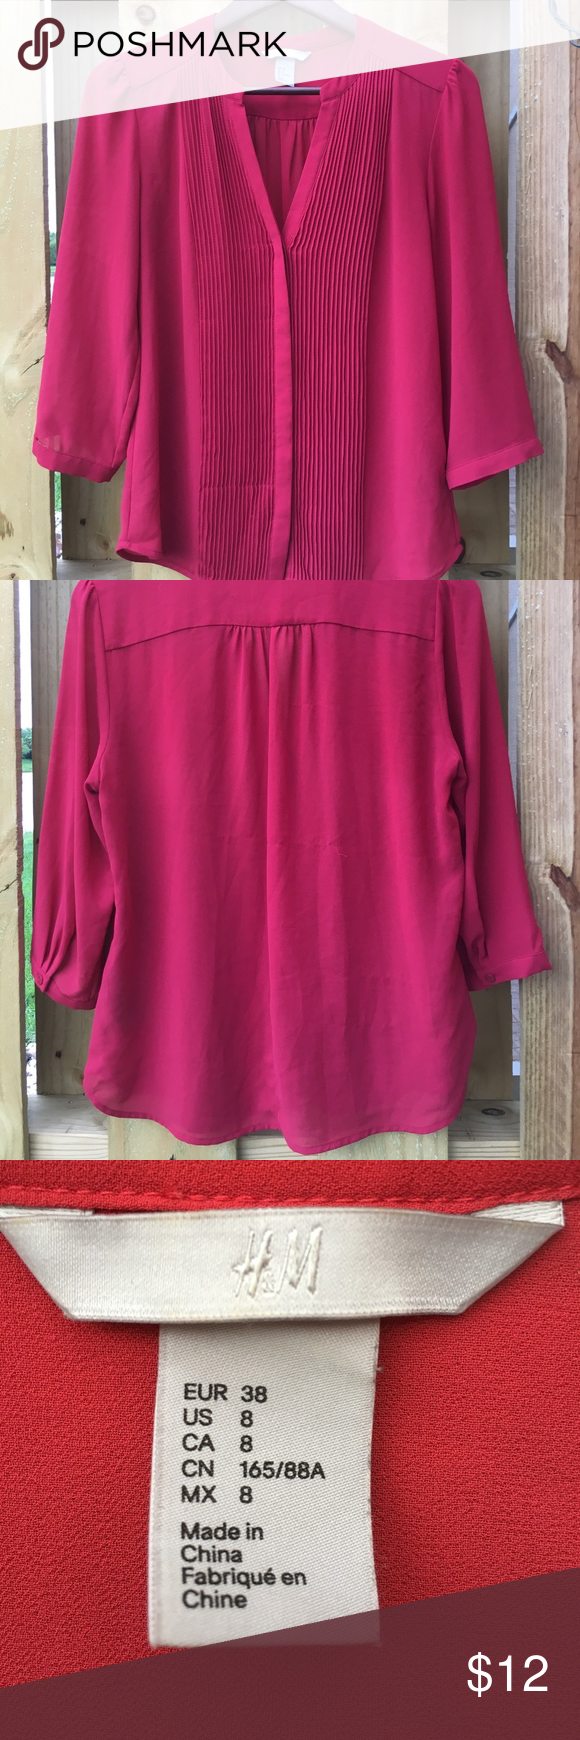 H&m pink pleated dress  HuM Red Pleated Top  Red blouses Customer support and Delivery